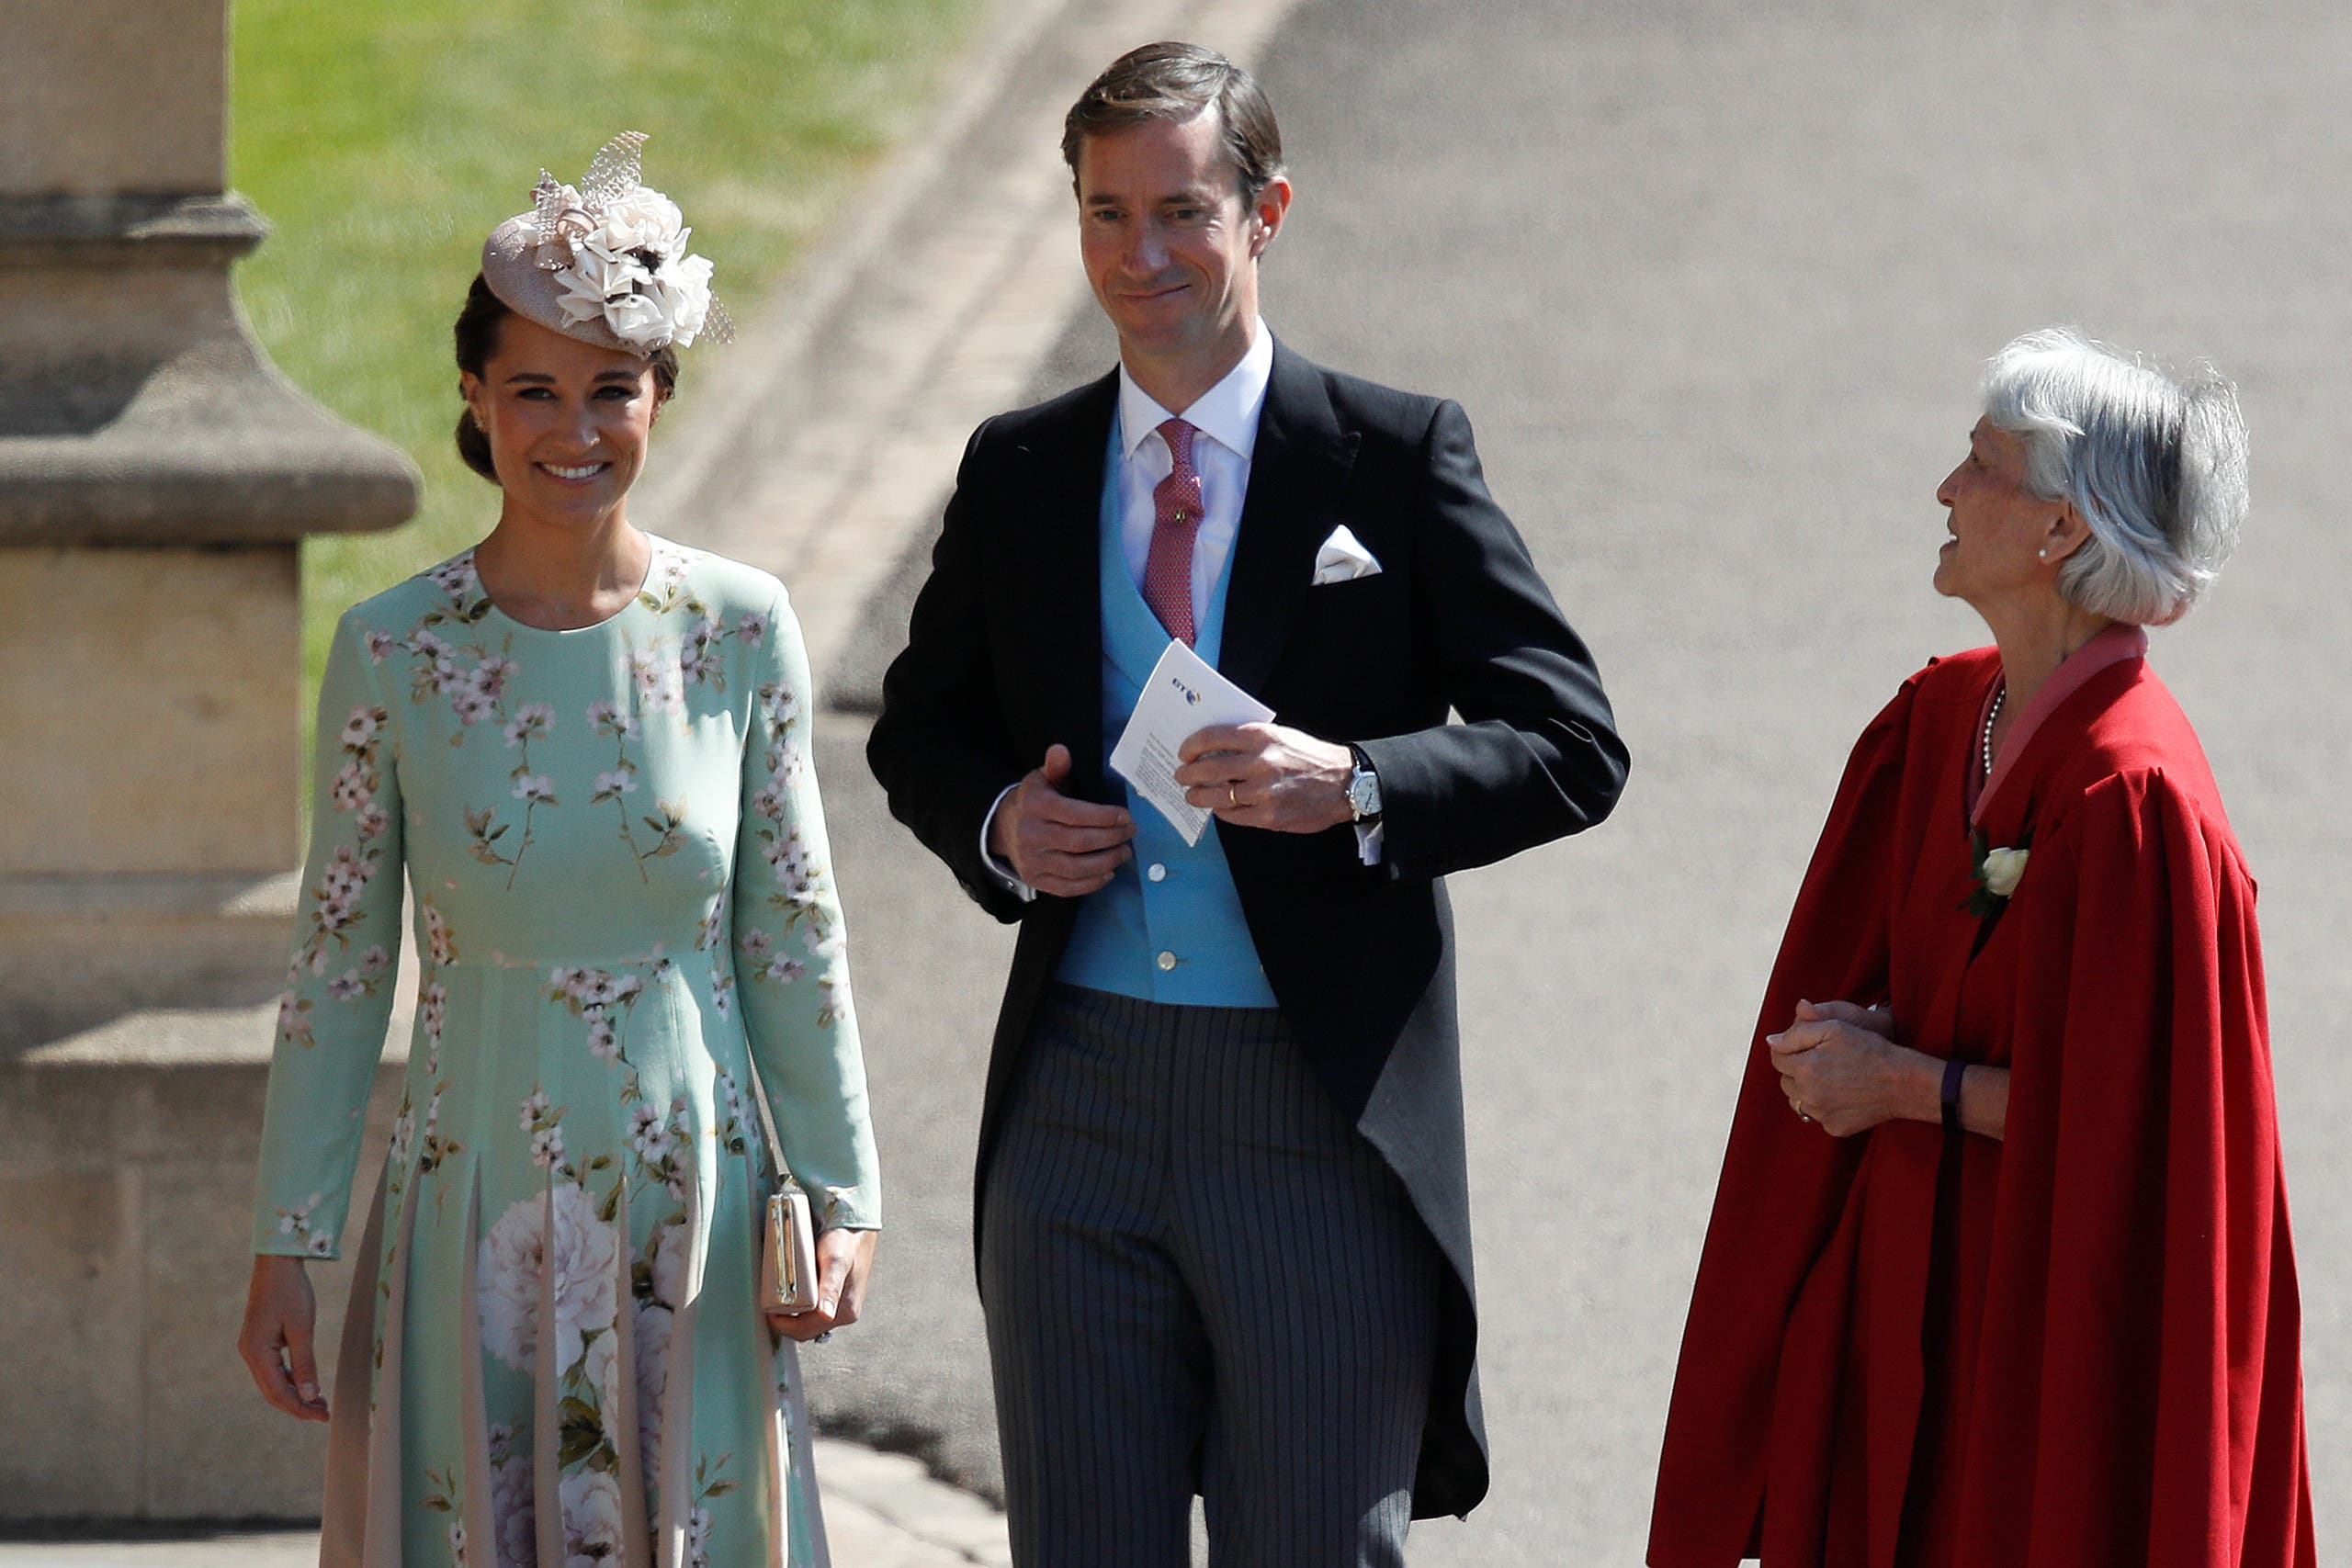 Pippa Middleton and her husband James Matthews arrive for the wedding ceremony of Britain's Prince Harry, Duke of Sussex and US actress Meghan Markle at St George's Chapel, Windsor Castle, in Windsor, Britain, May 19, 2018. Odd ANDERSEN/Pool via REUTERS